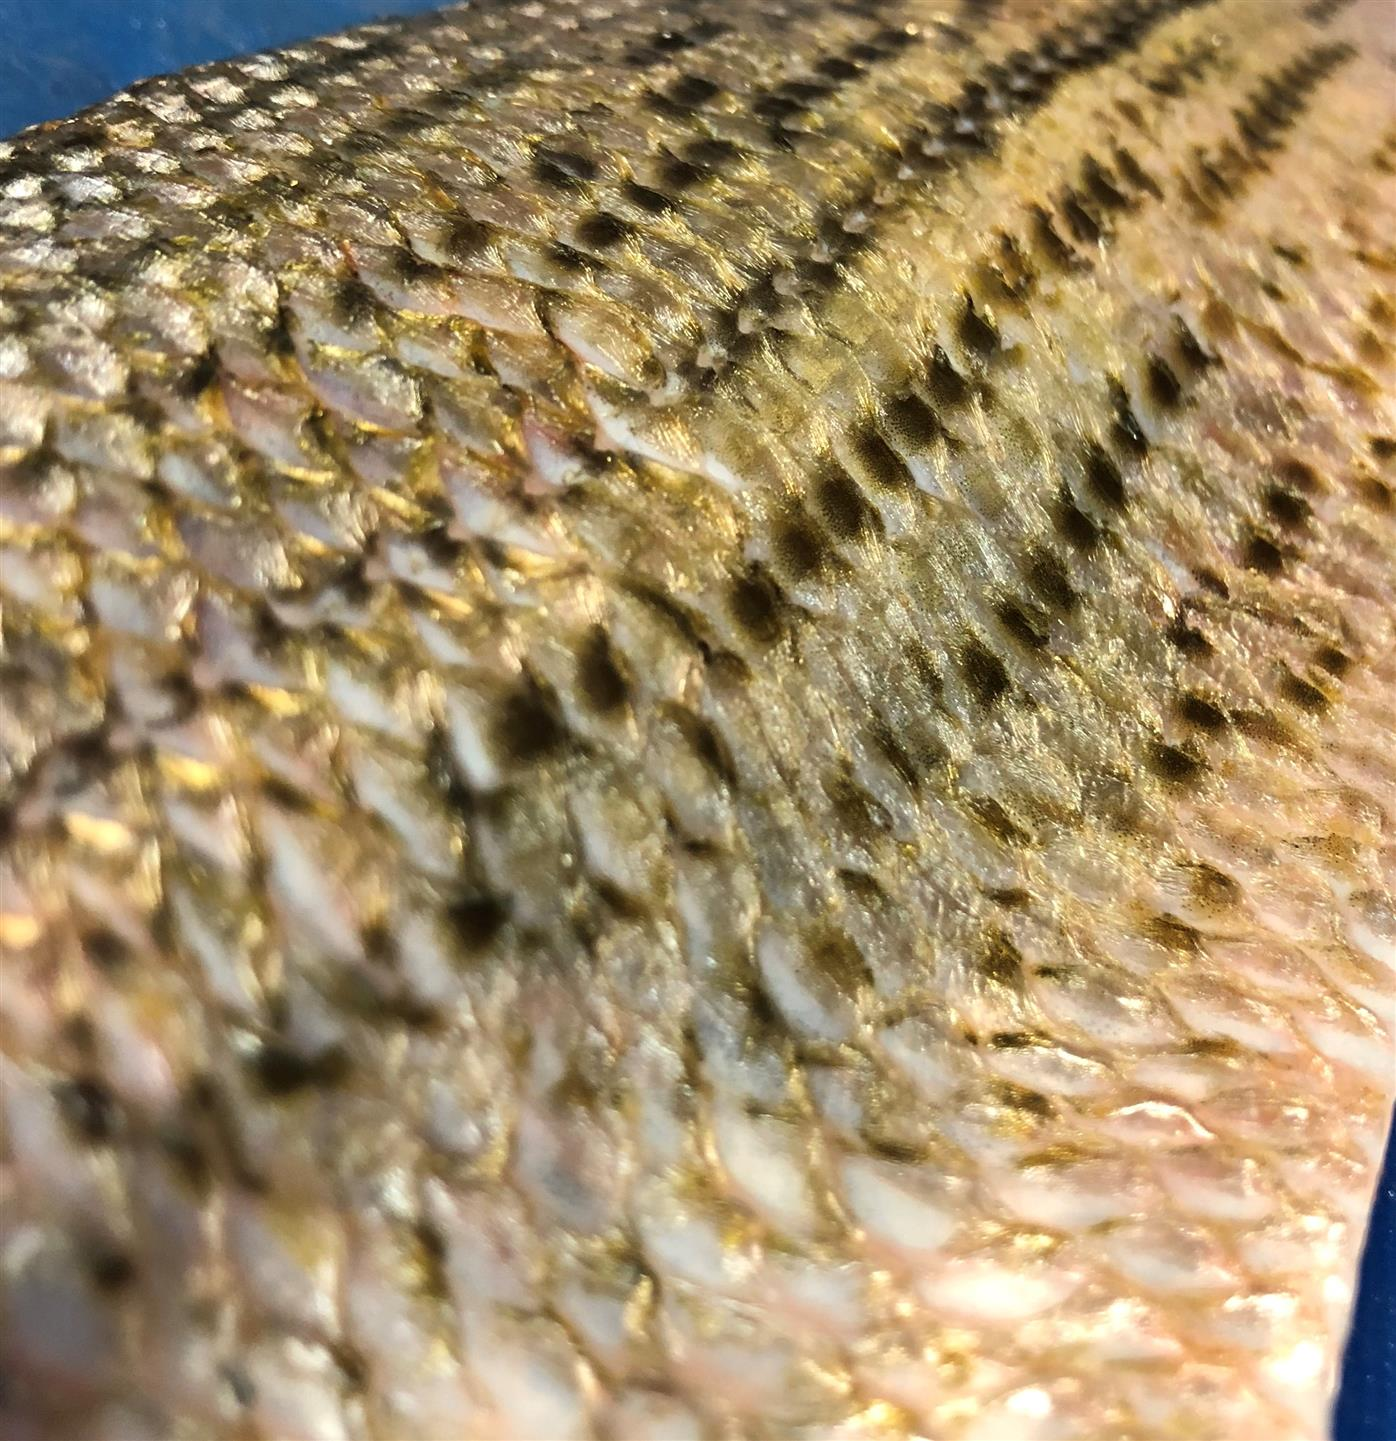 close of of fish scales on a fish